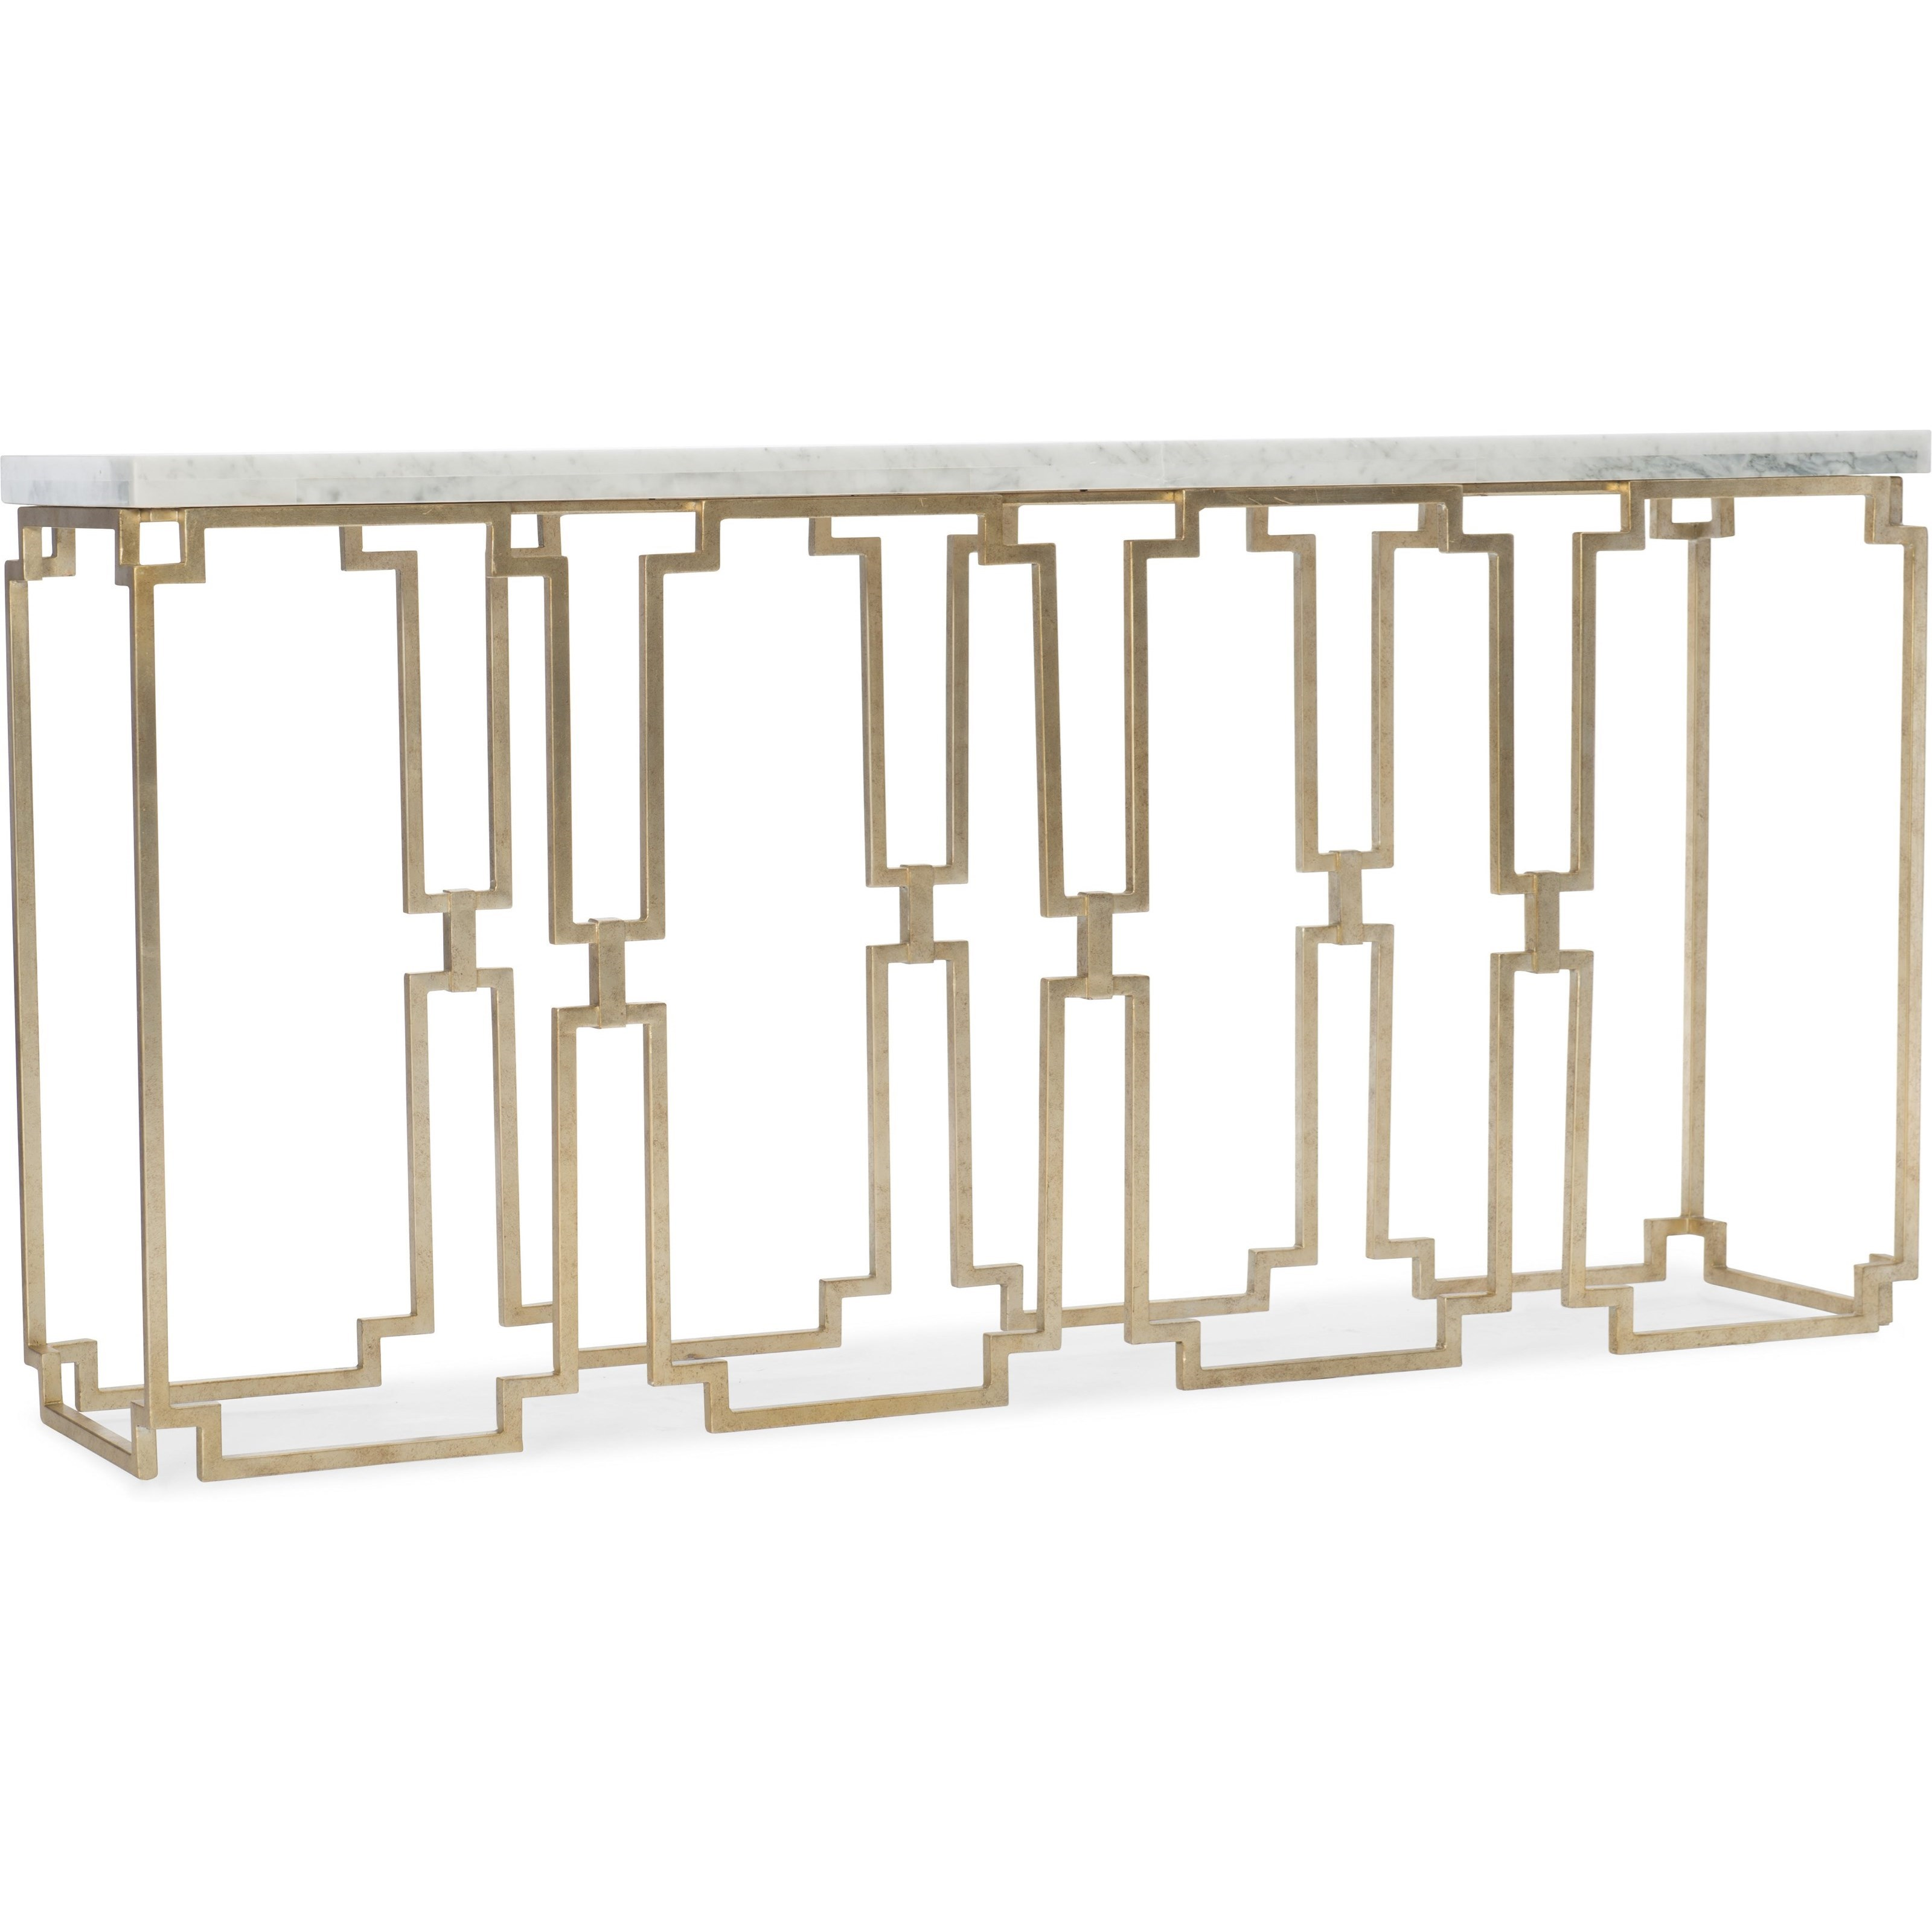 Evermore Console Table by Hooker Furniture at Alison Craig Home Furnishings